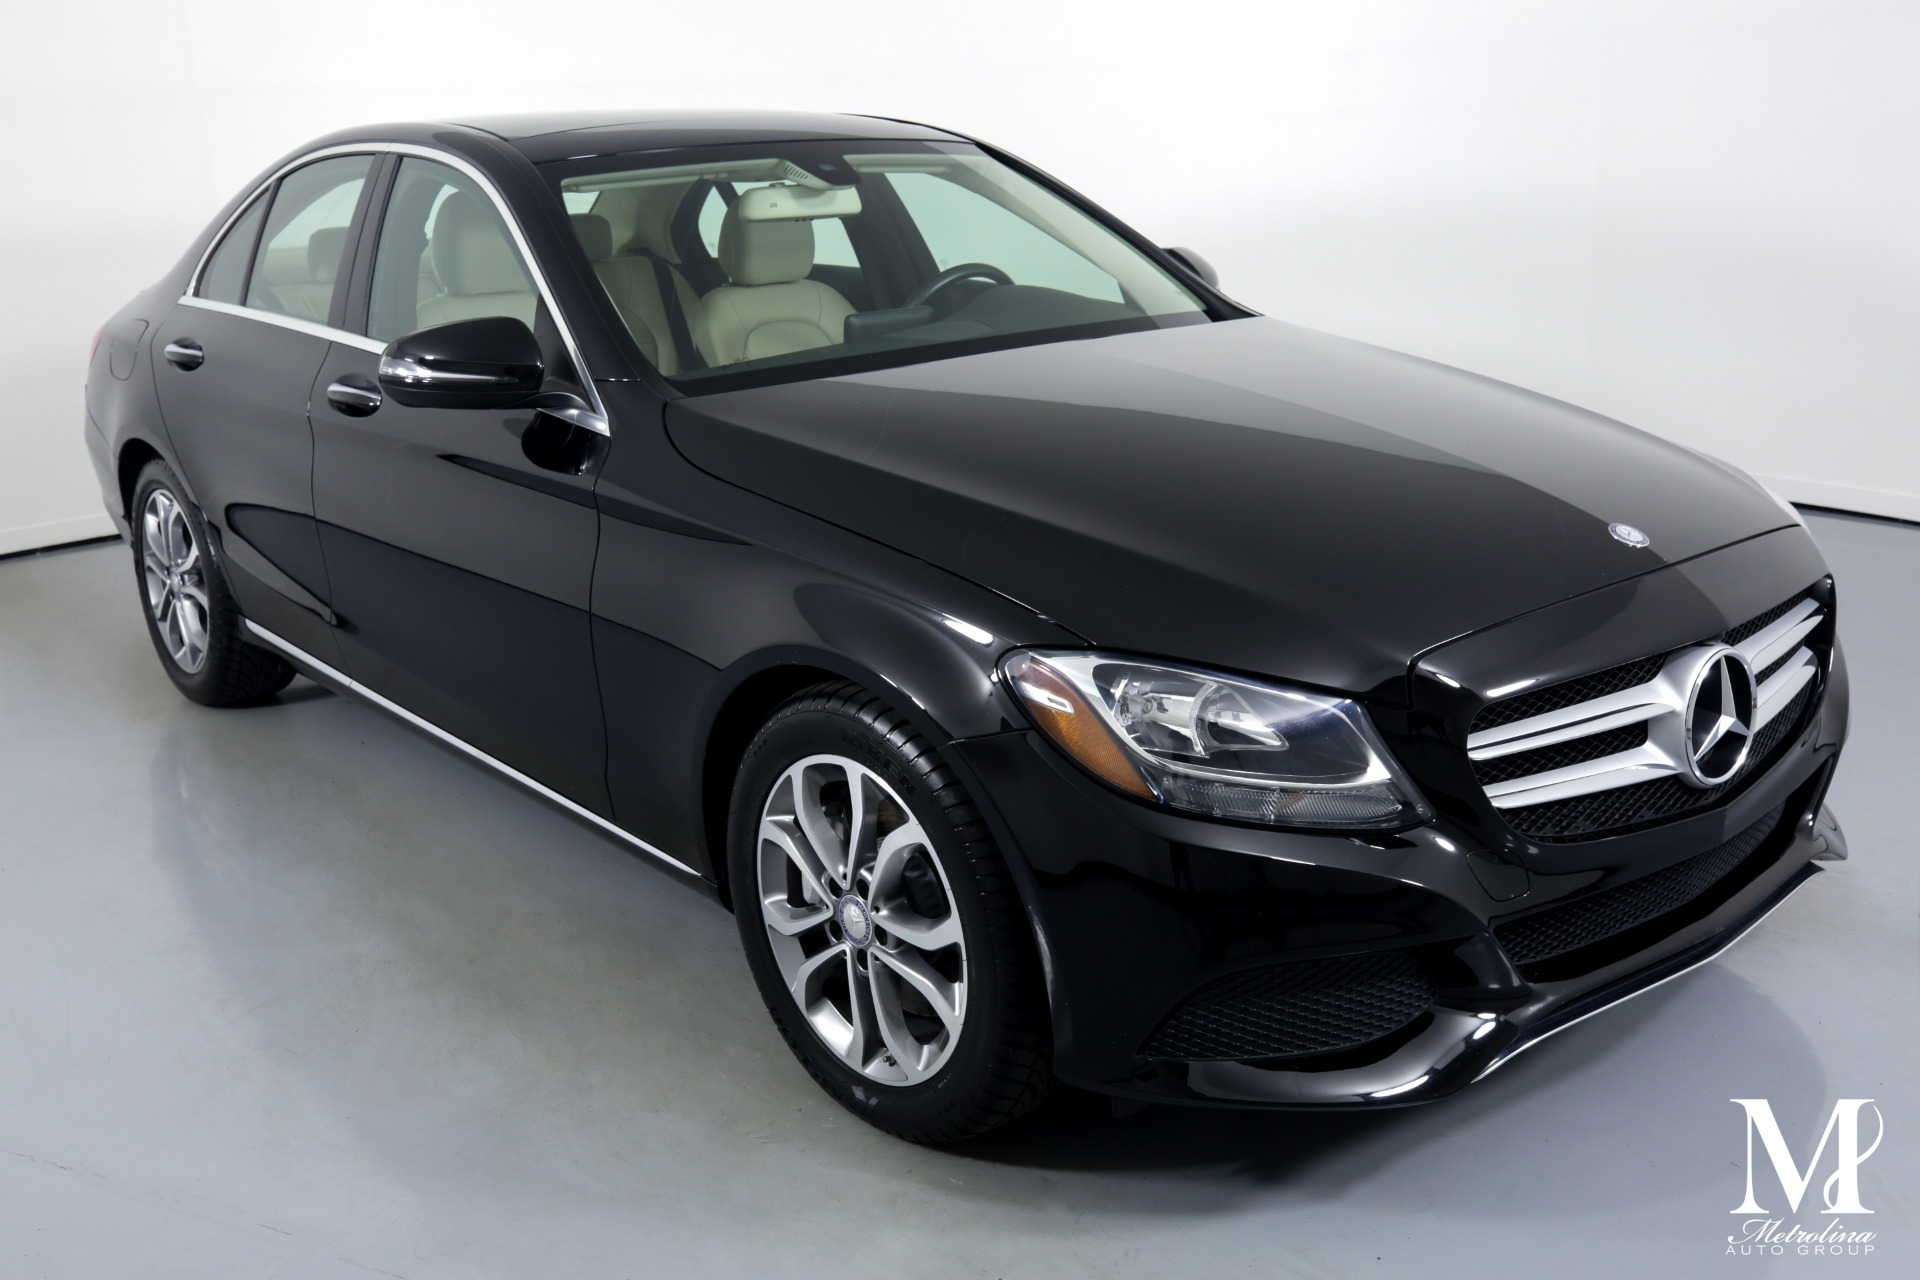 Used 2016 Mercedes-Benz C-Class C 300 for sale $23,456 at Metrolina Auto Group in Charlotte NC 28217 - 2